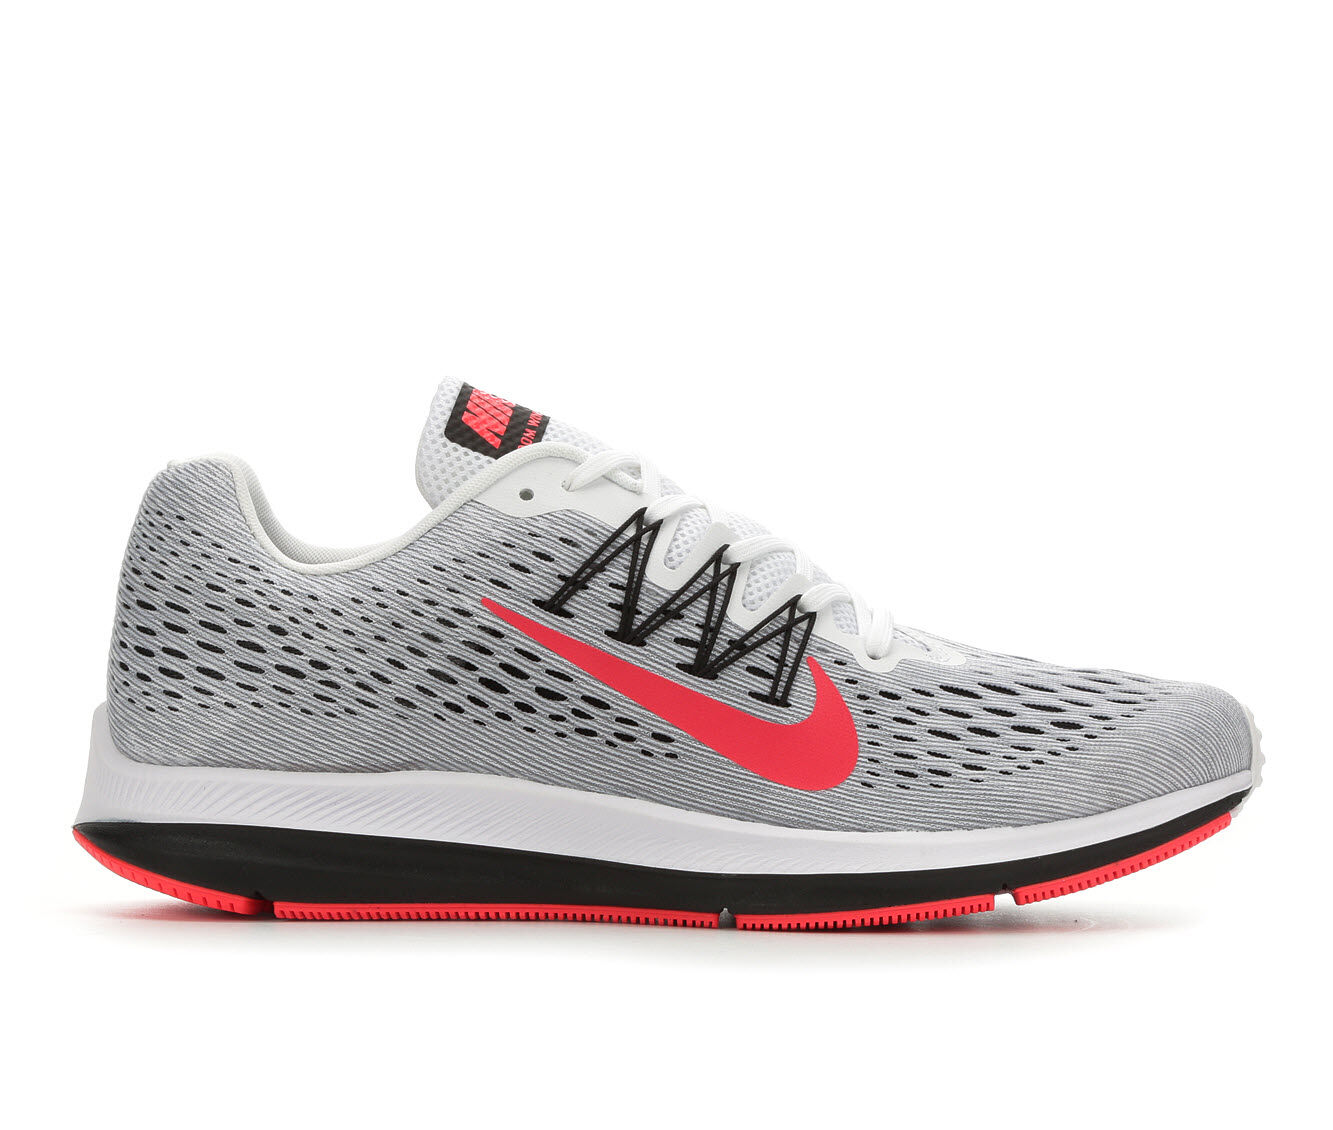 Men's Nike Zoom Winflo 5 Running Shoes Gy/Wh/Rd/Bk 101